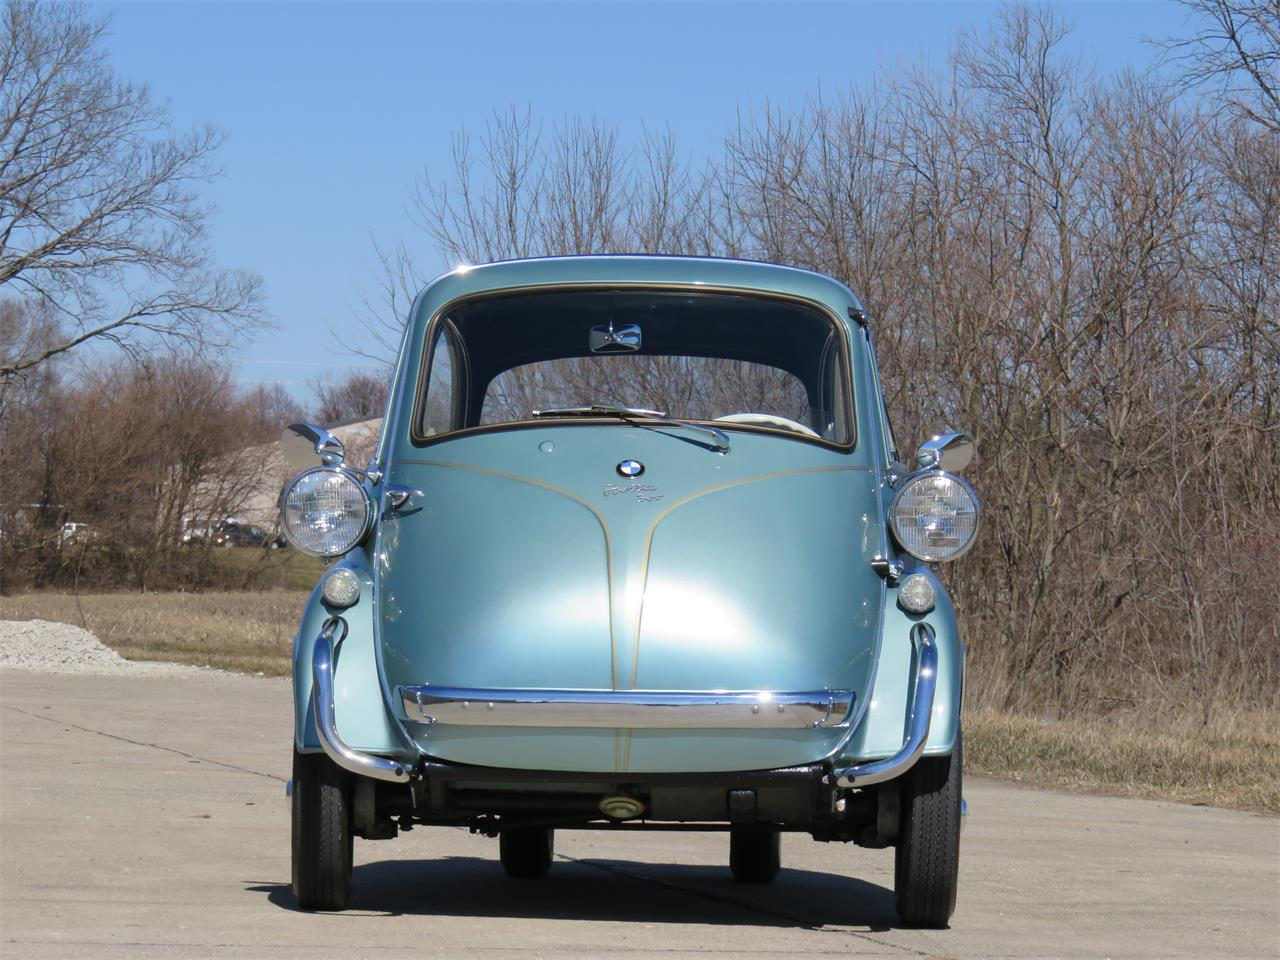 Large Picture of 1958 BMW Isetta located in Kokomo Indiana Auction Vehicle - N3EA